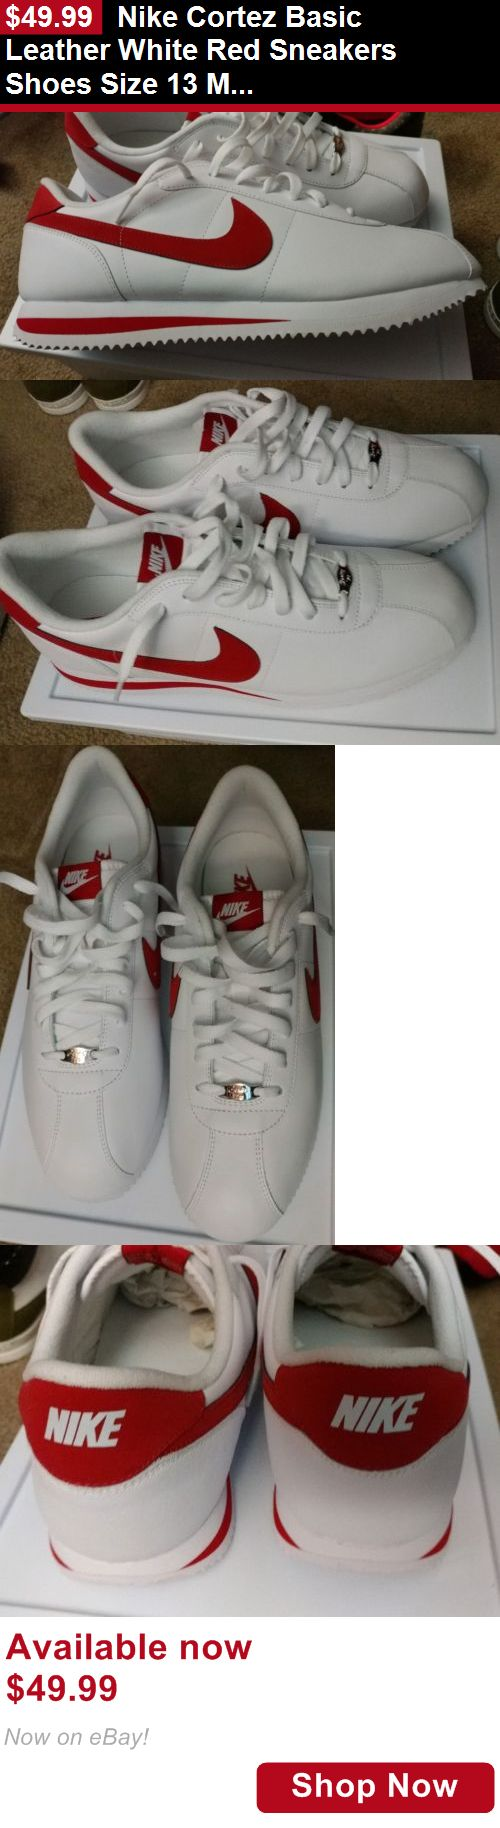 Men shoes: Nike Cortez Basic Leather White Red Sneakers Shoes Size 13 Mens BUY IT NOW ONLY: $49.99